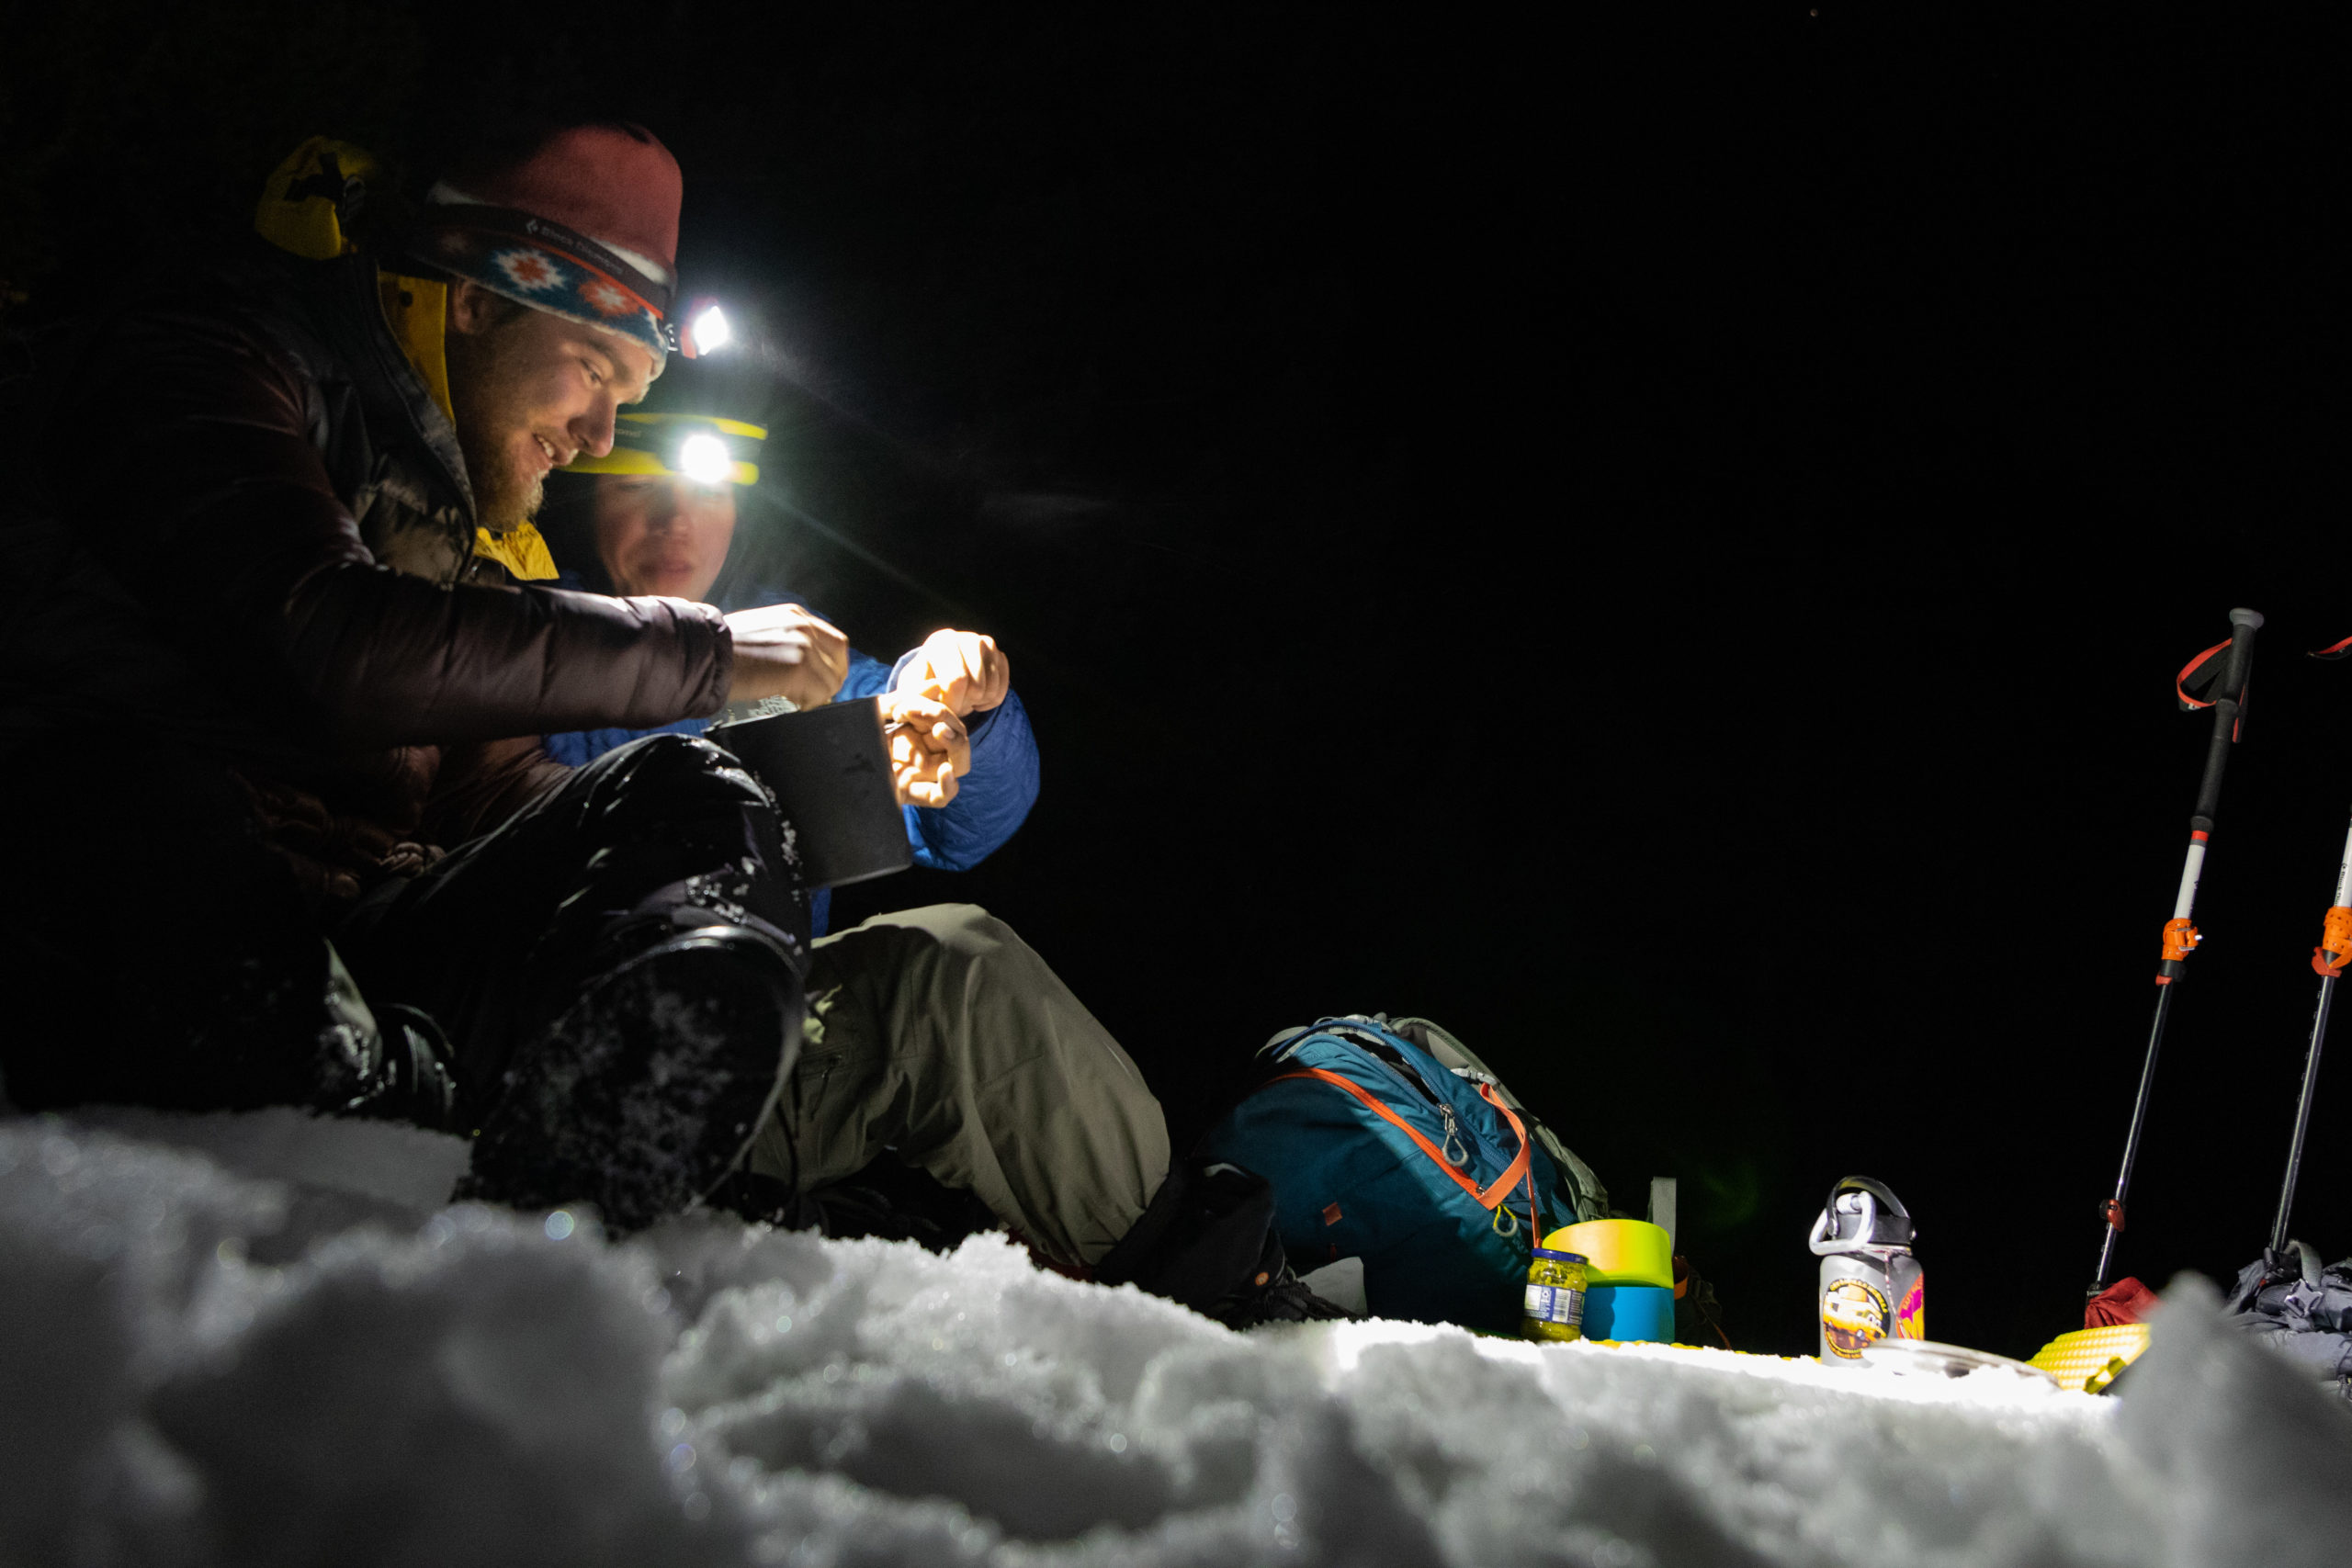 snow camping featured image